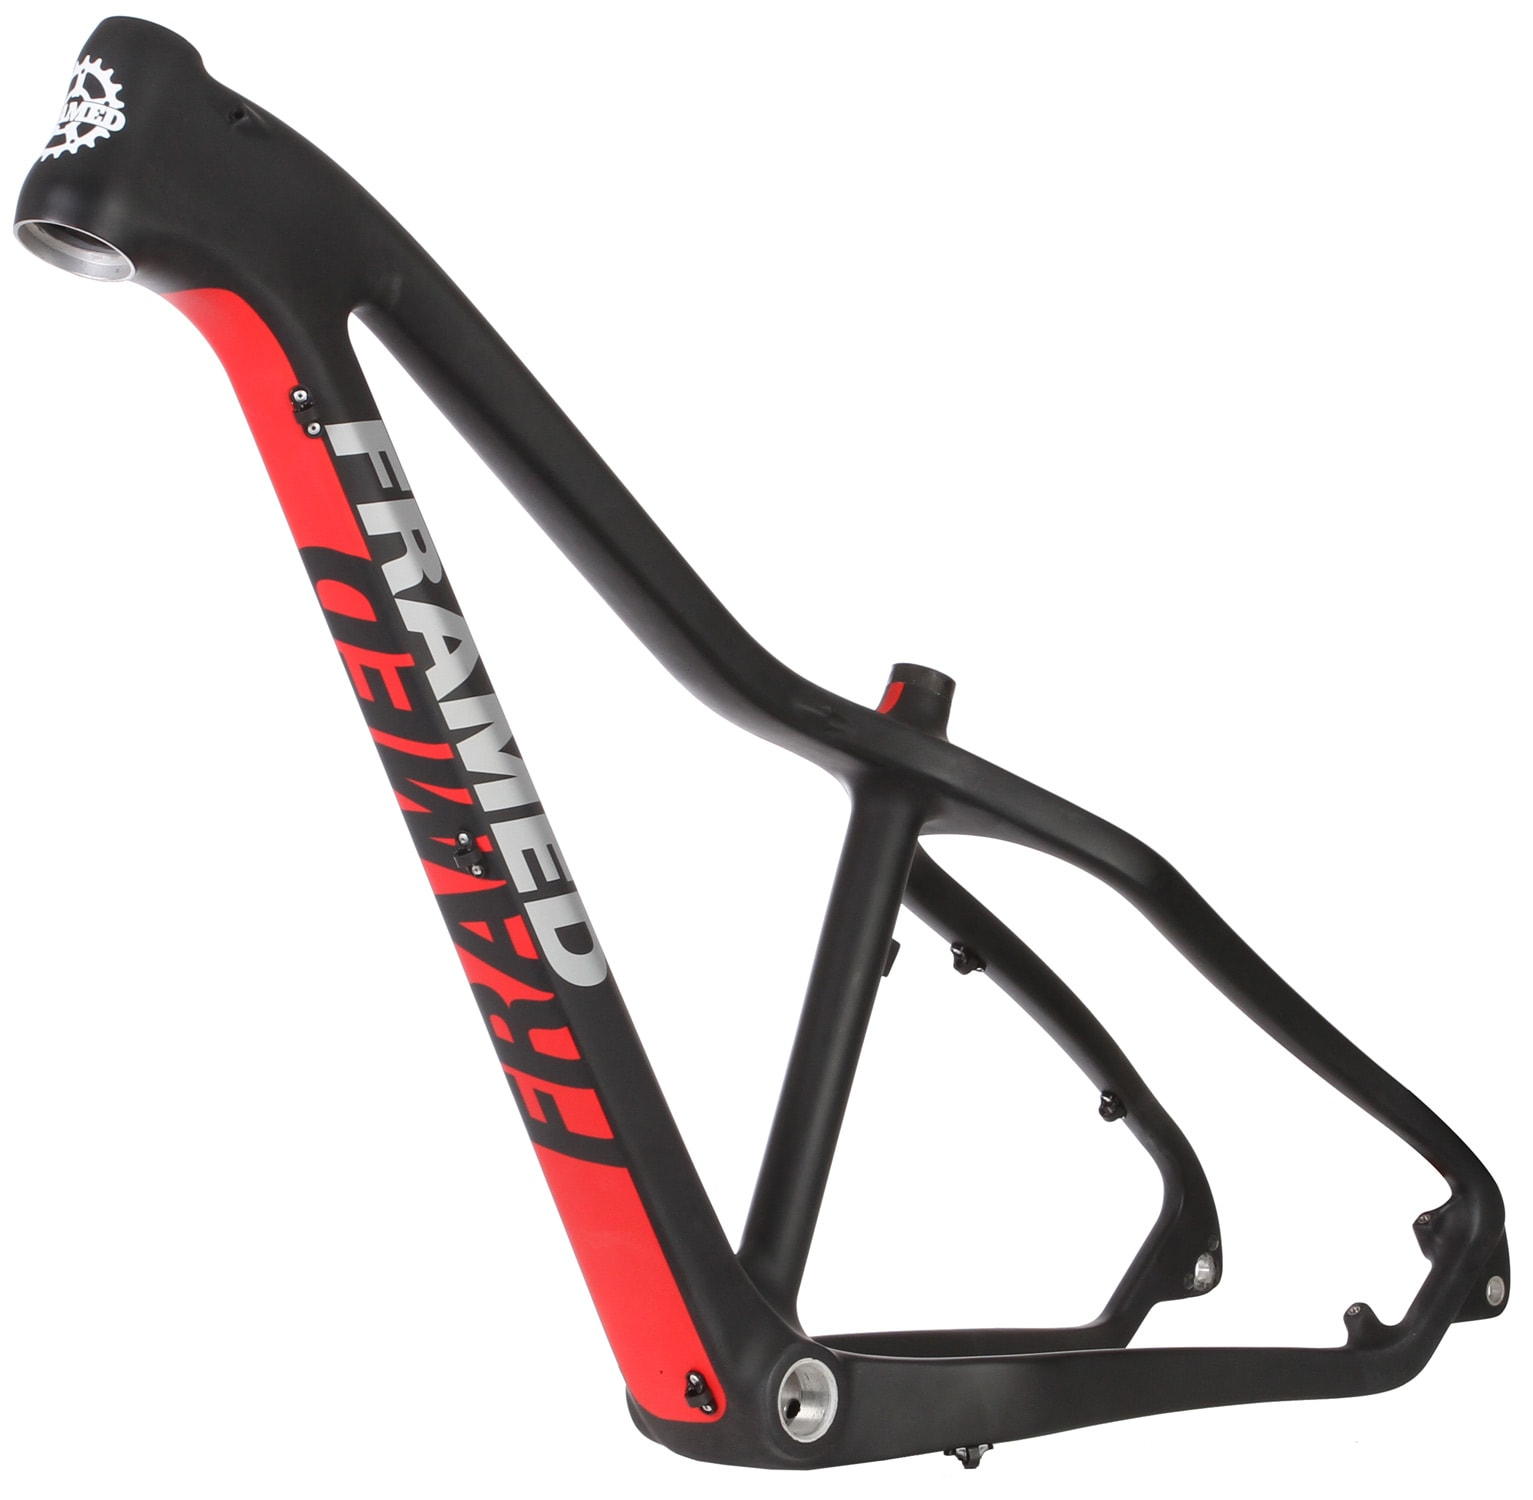 On Sale Alaskan Carbon Fat Bike Frame up to 50% off